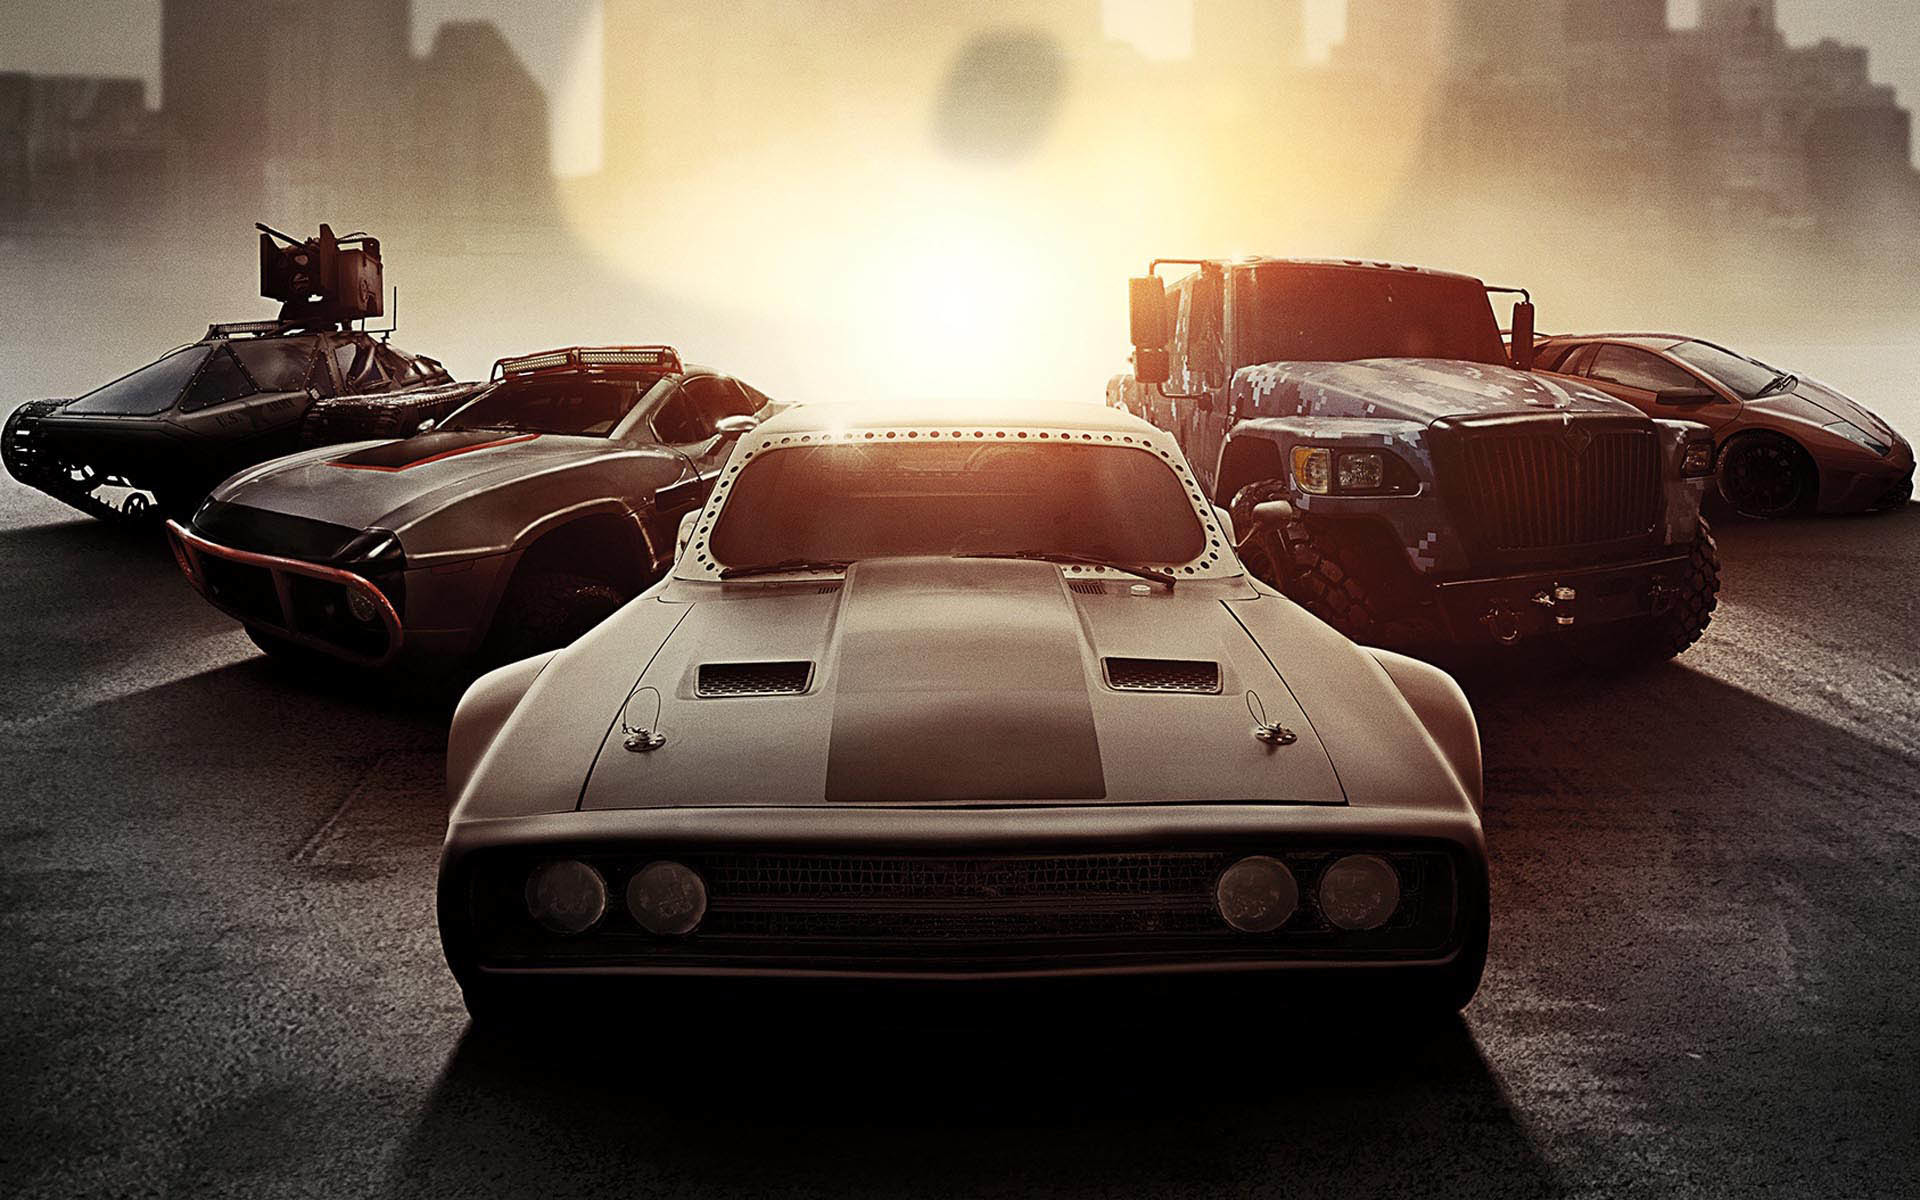 Fast And The Furious 7 Wallpaper: Fast And Furious Wallpaper (77+ Images